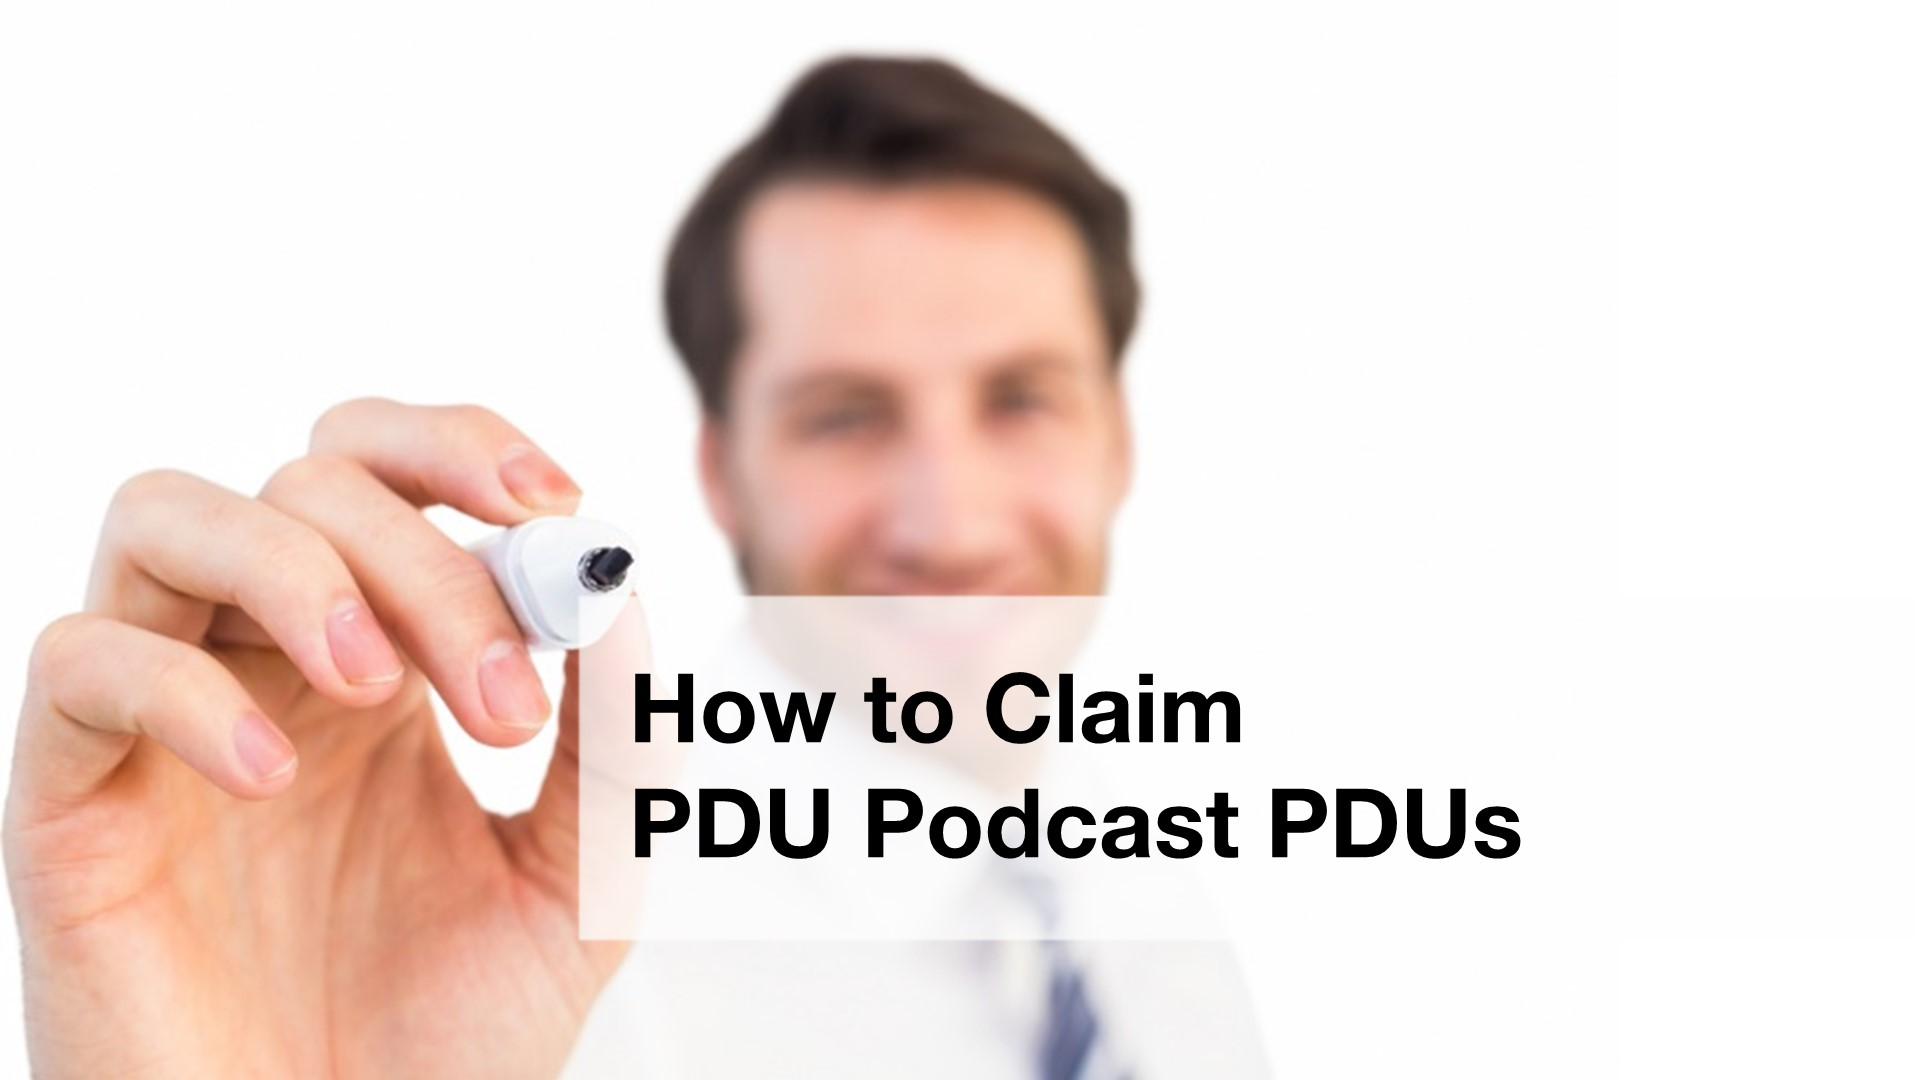 PDUs - How to Claim PDU Podcast PDUs